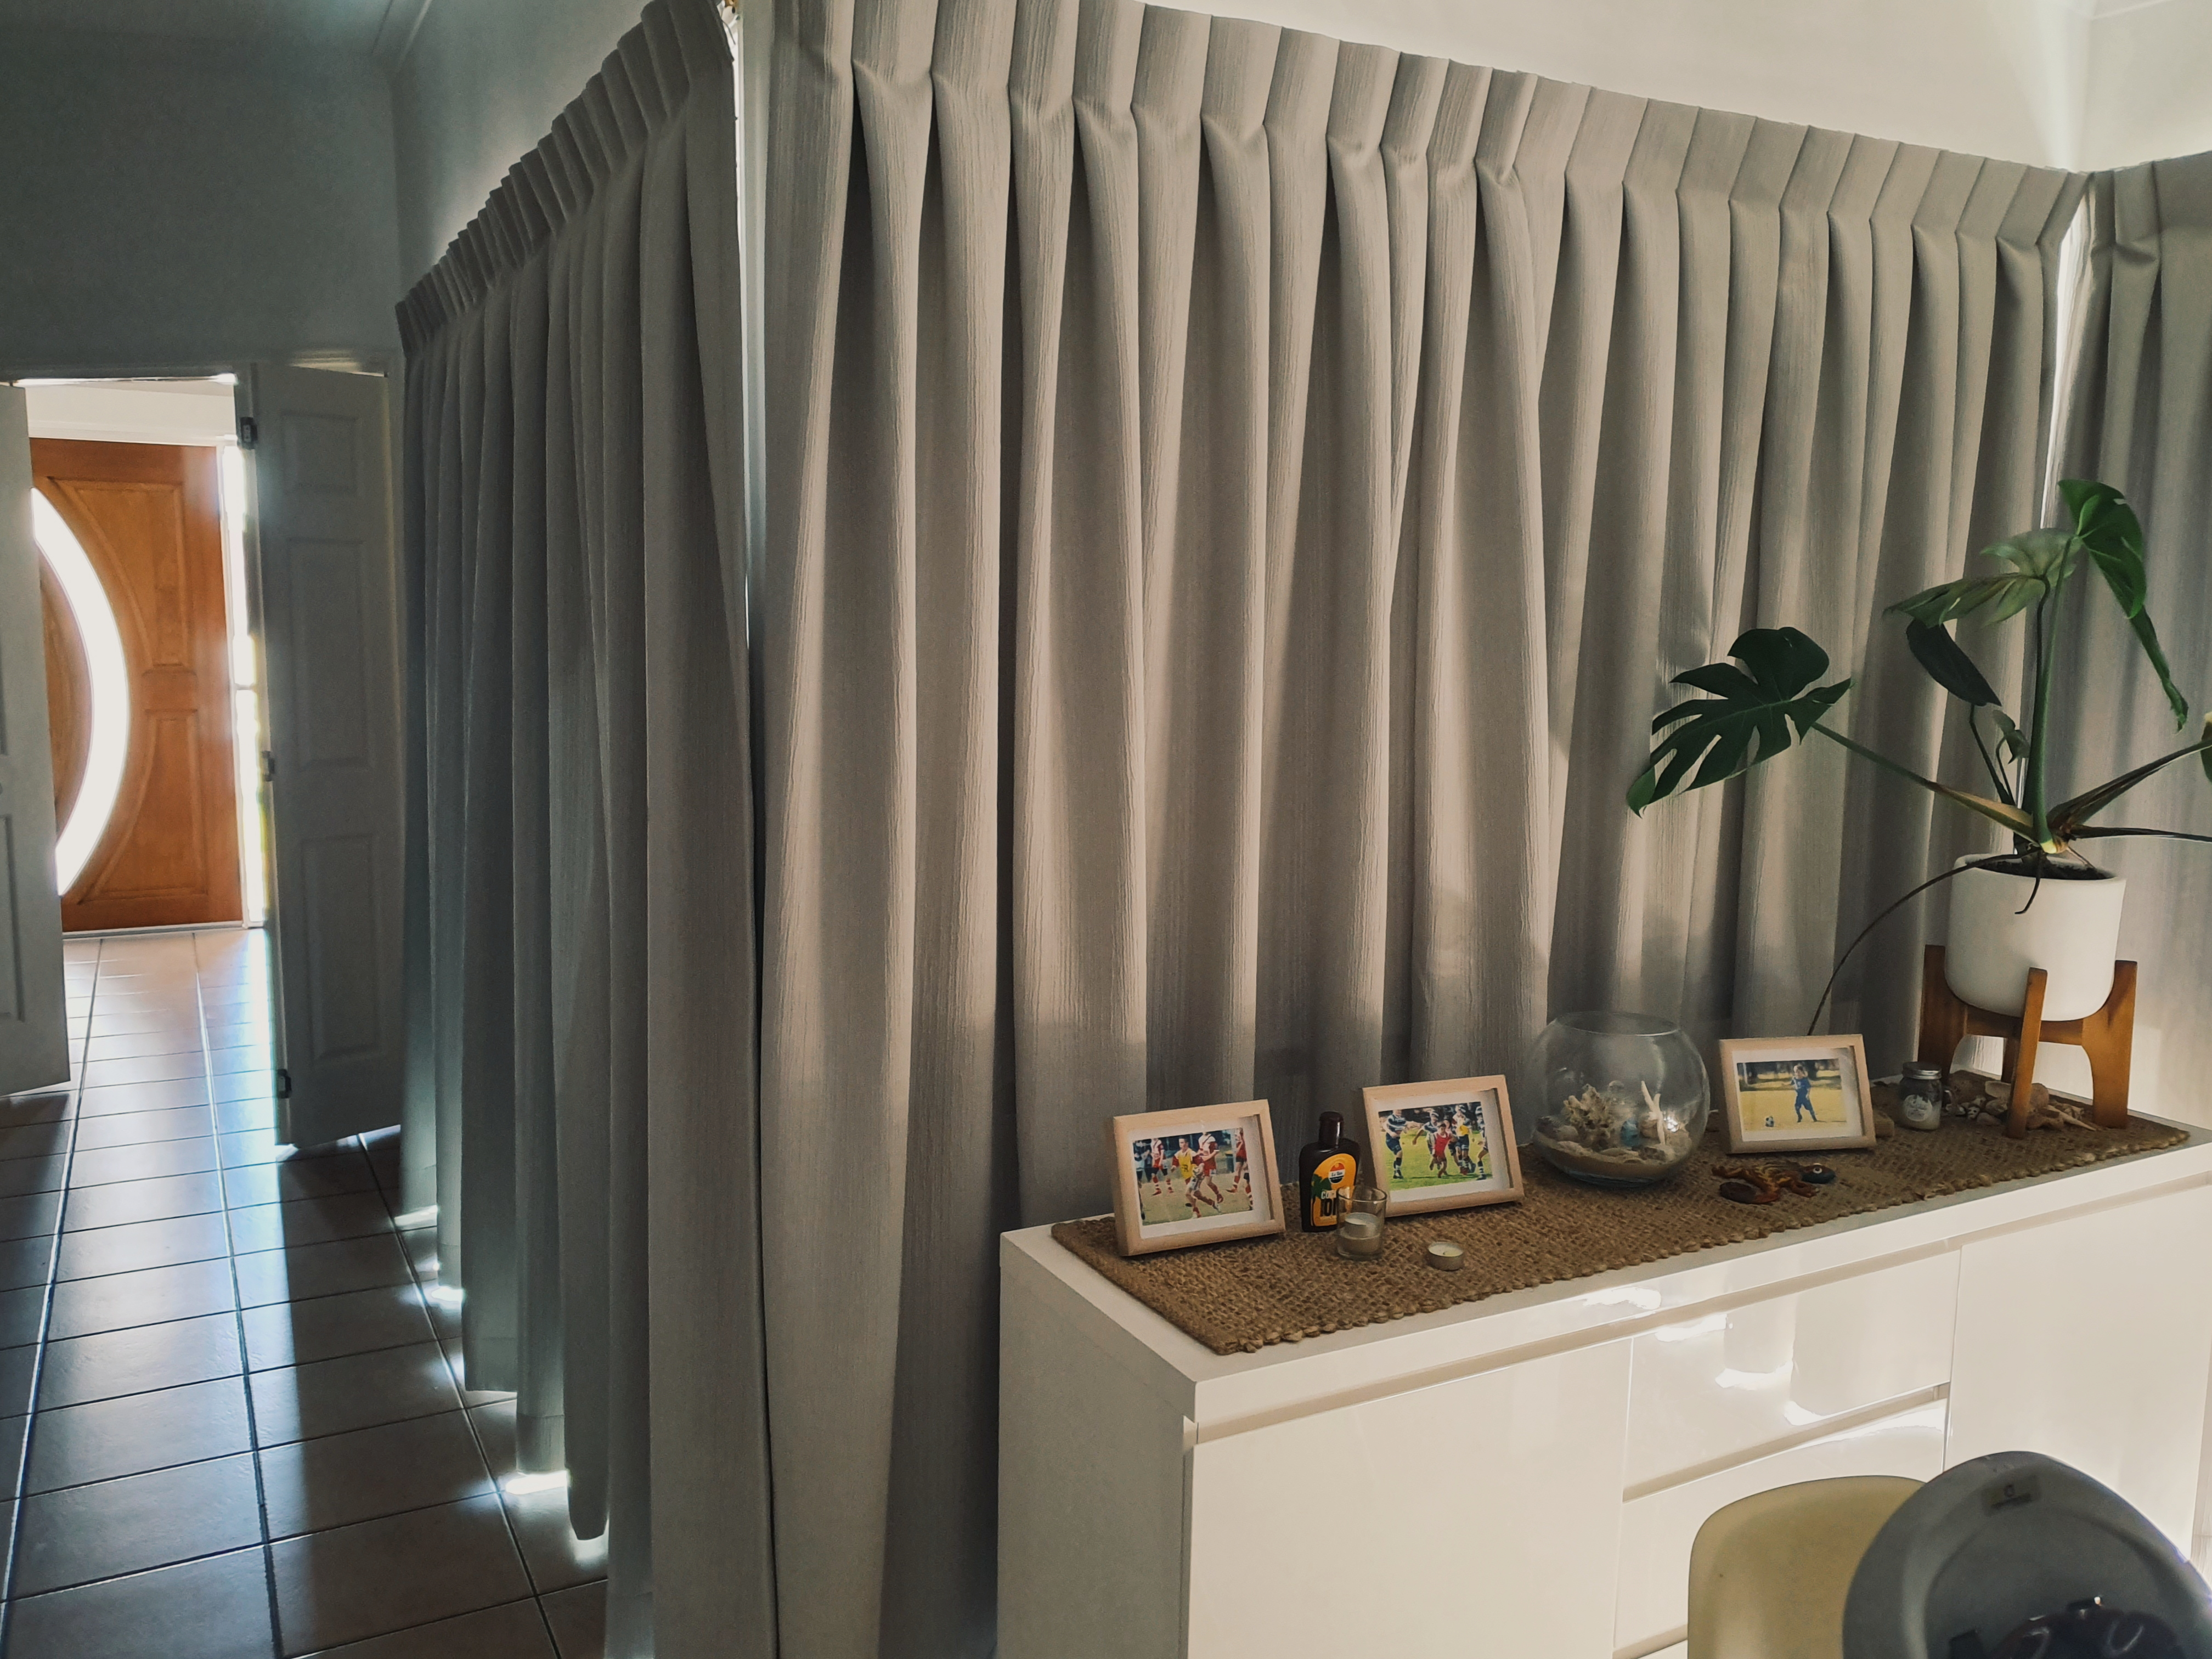 Tripleweave dimout blockout room darkening drapery curtains reverse pleated